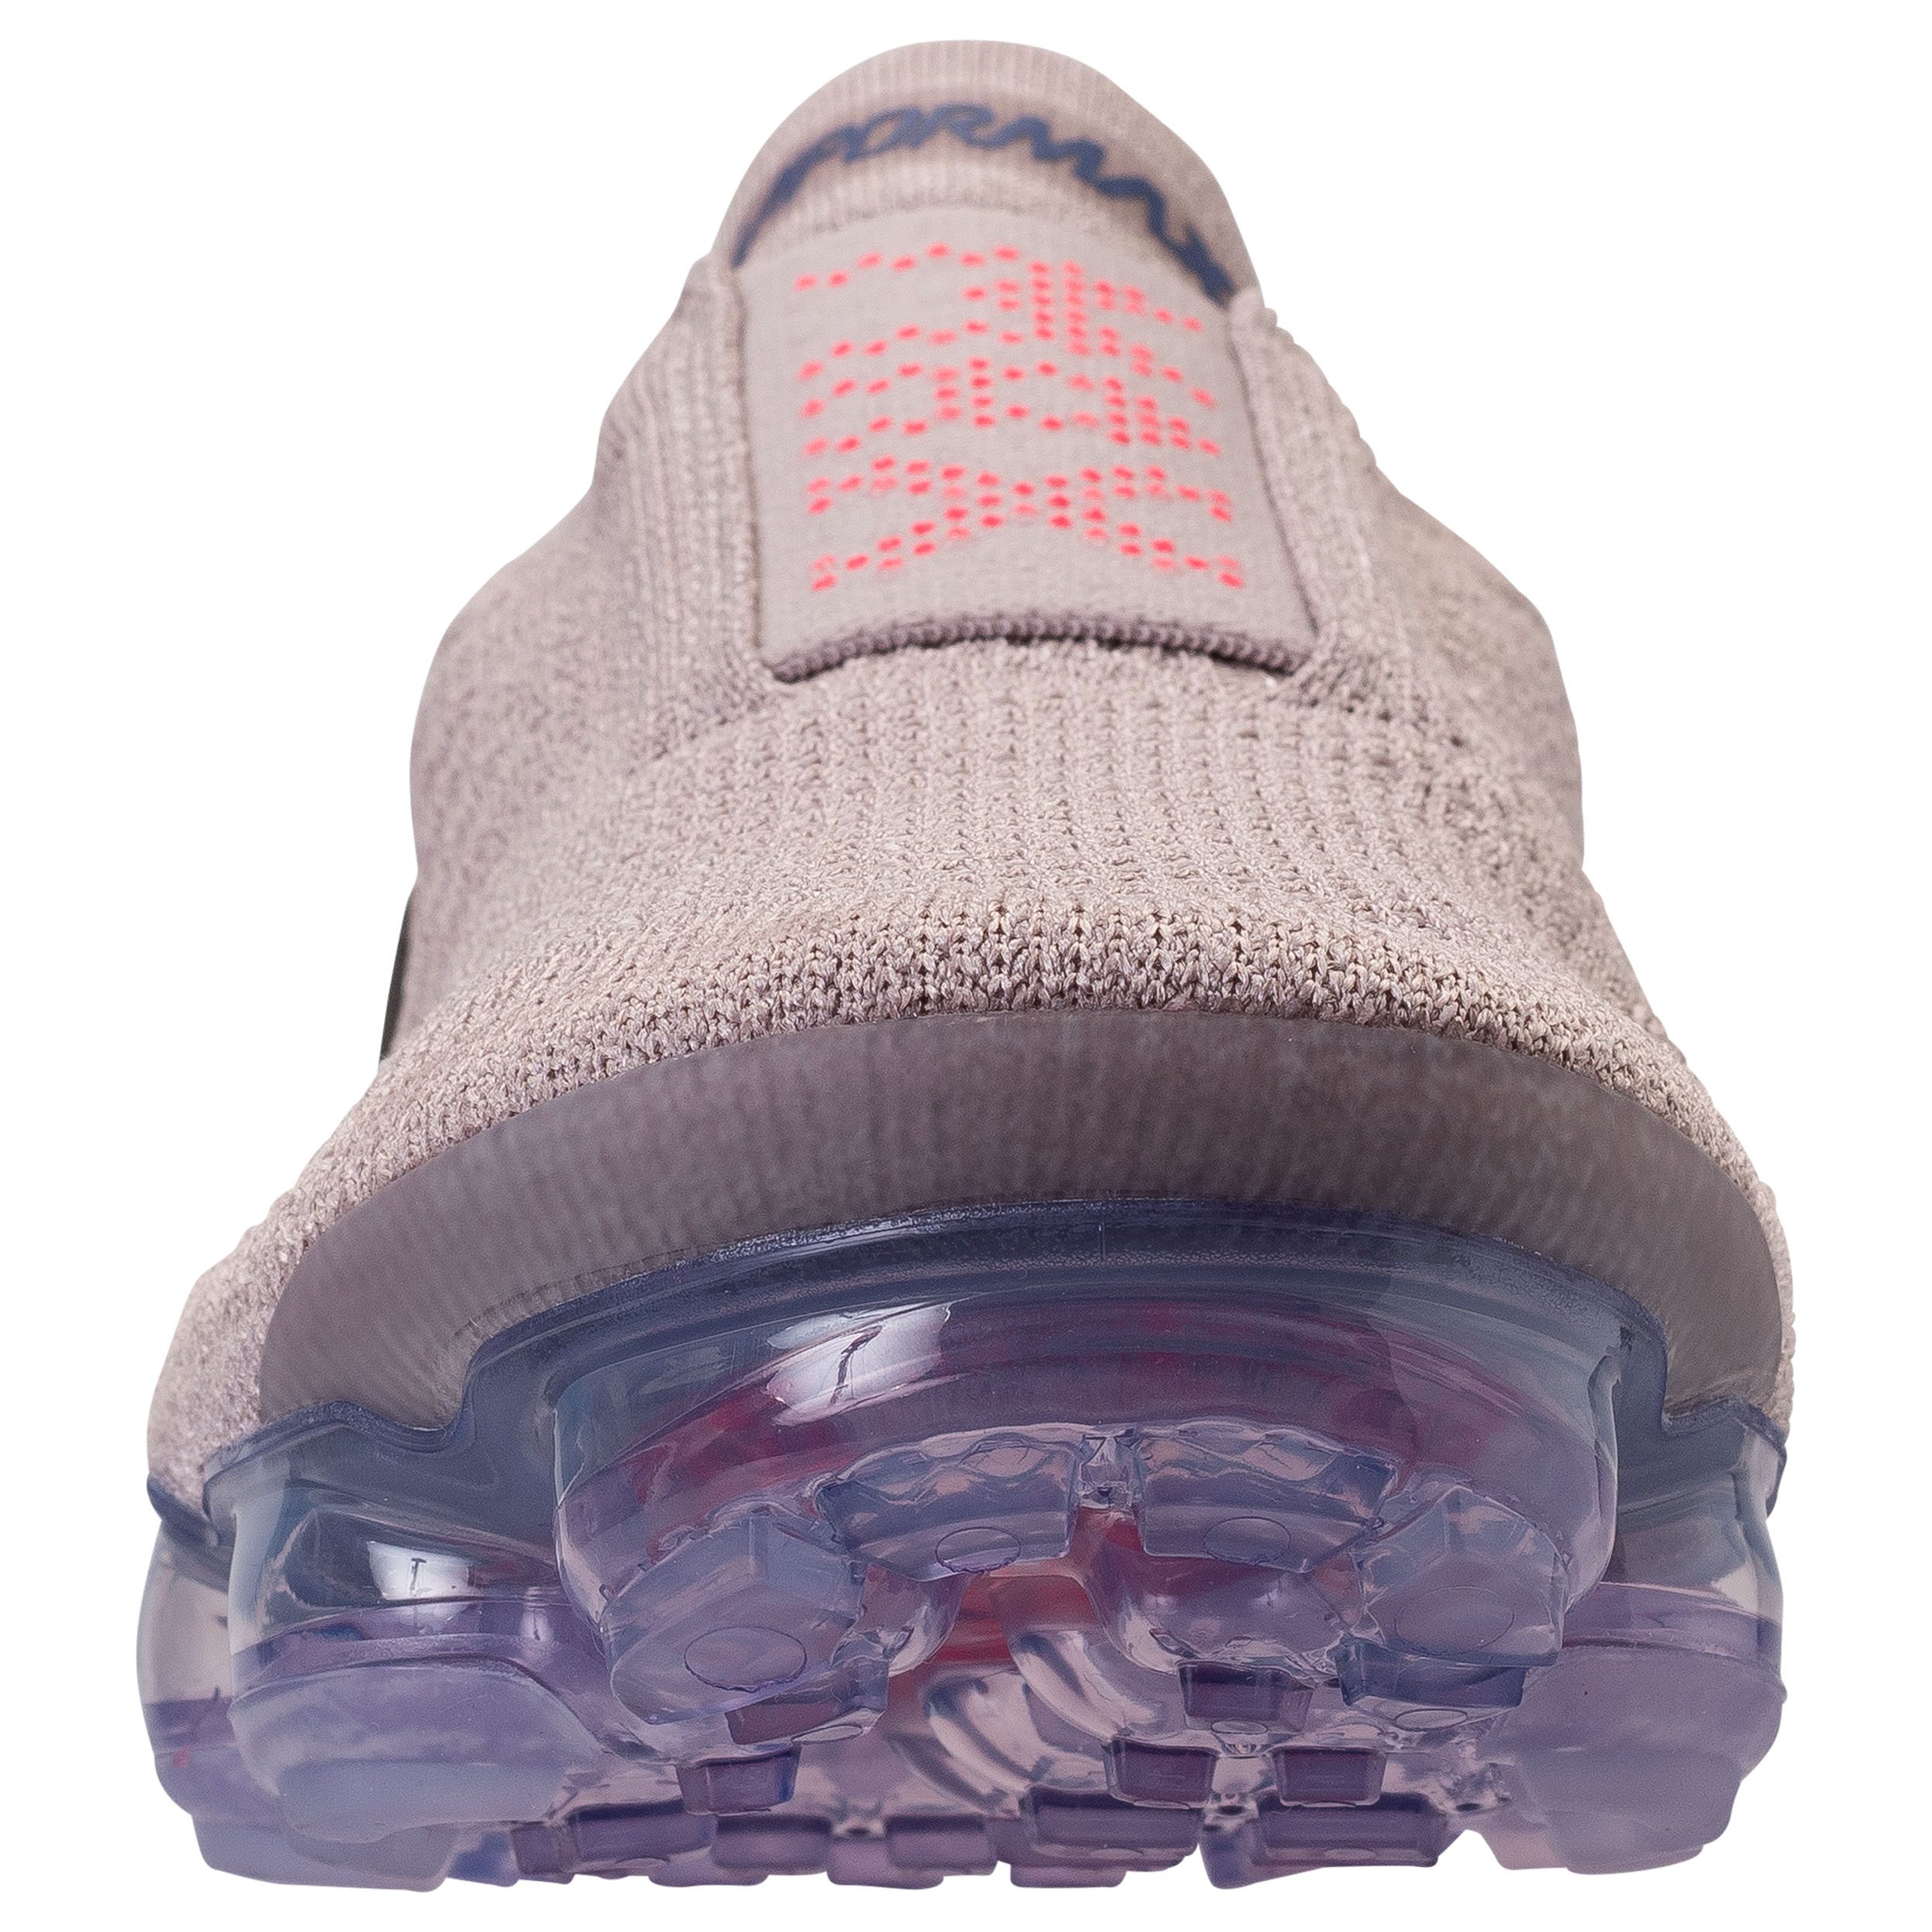 82d92f74f9 nike air vapormax flyknit moc 2 moon particle 3 - WearTesters